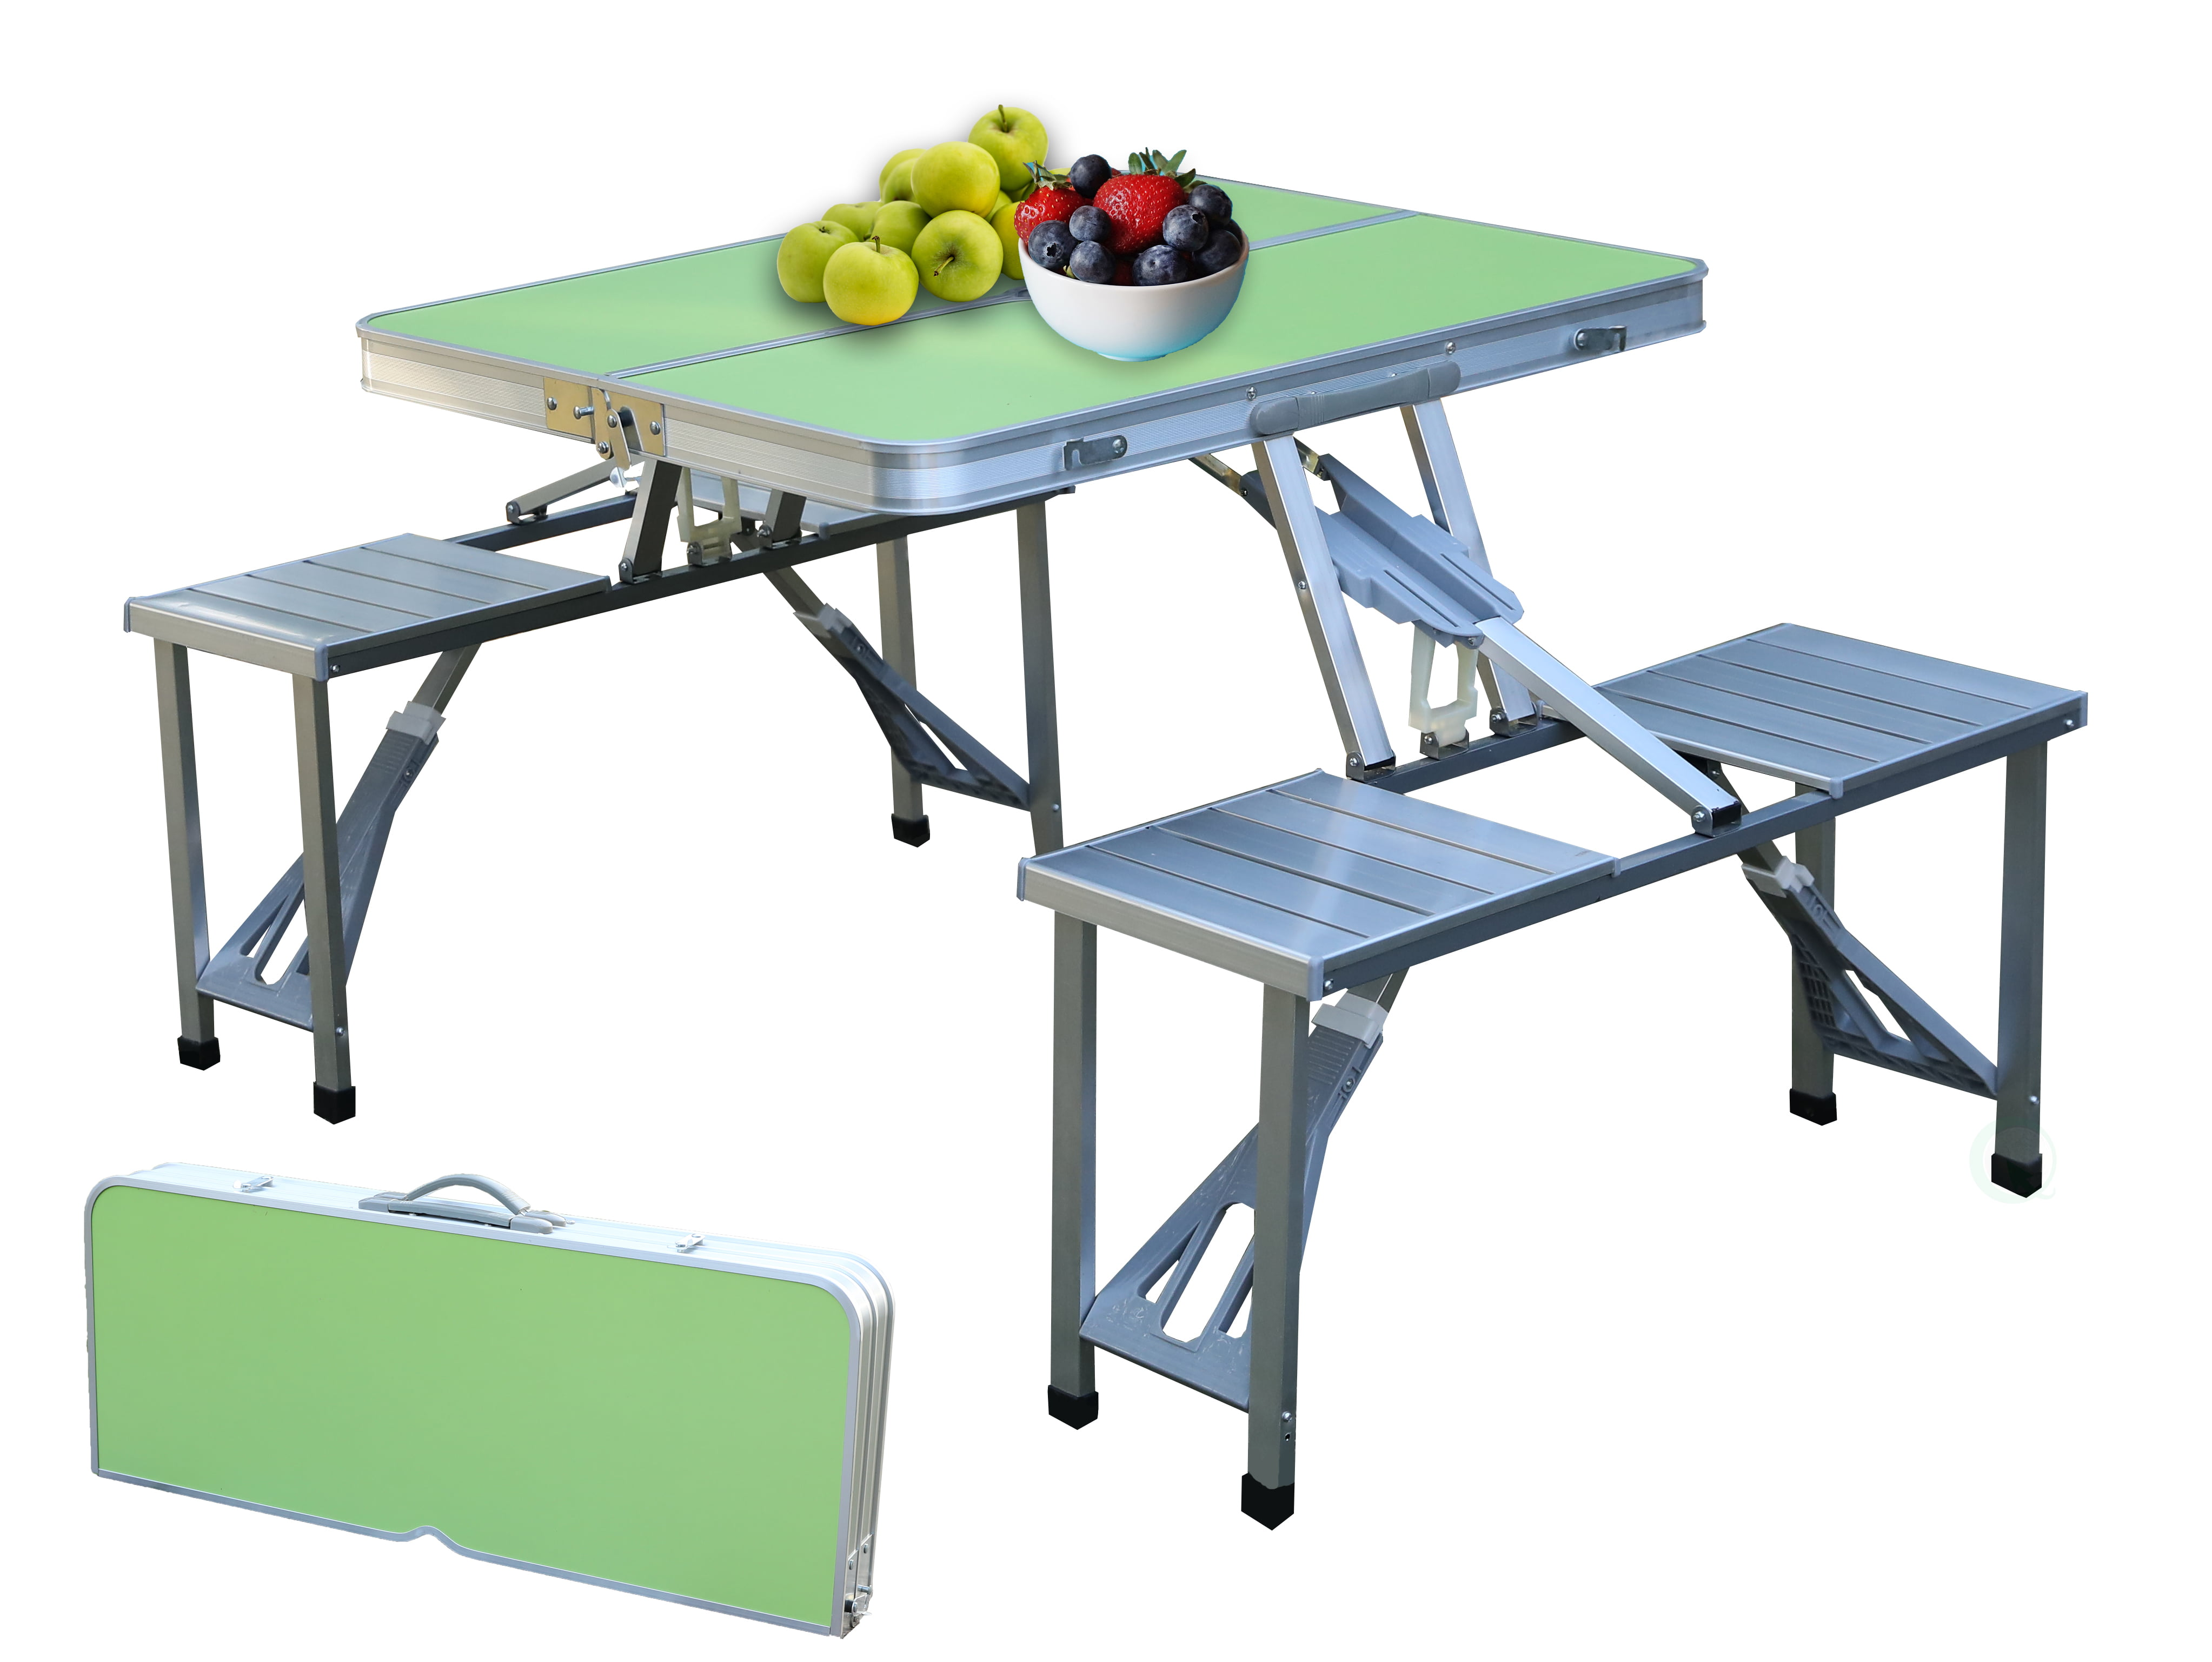 Aluminum Portable Picnic Folding Table with Two Benches, Green by Quickway Imports